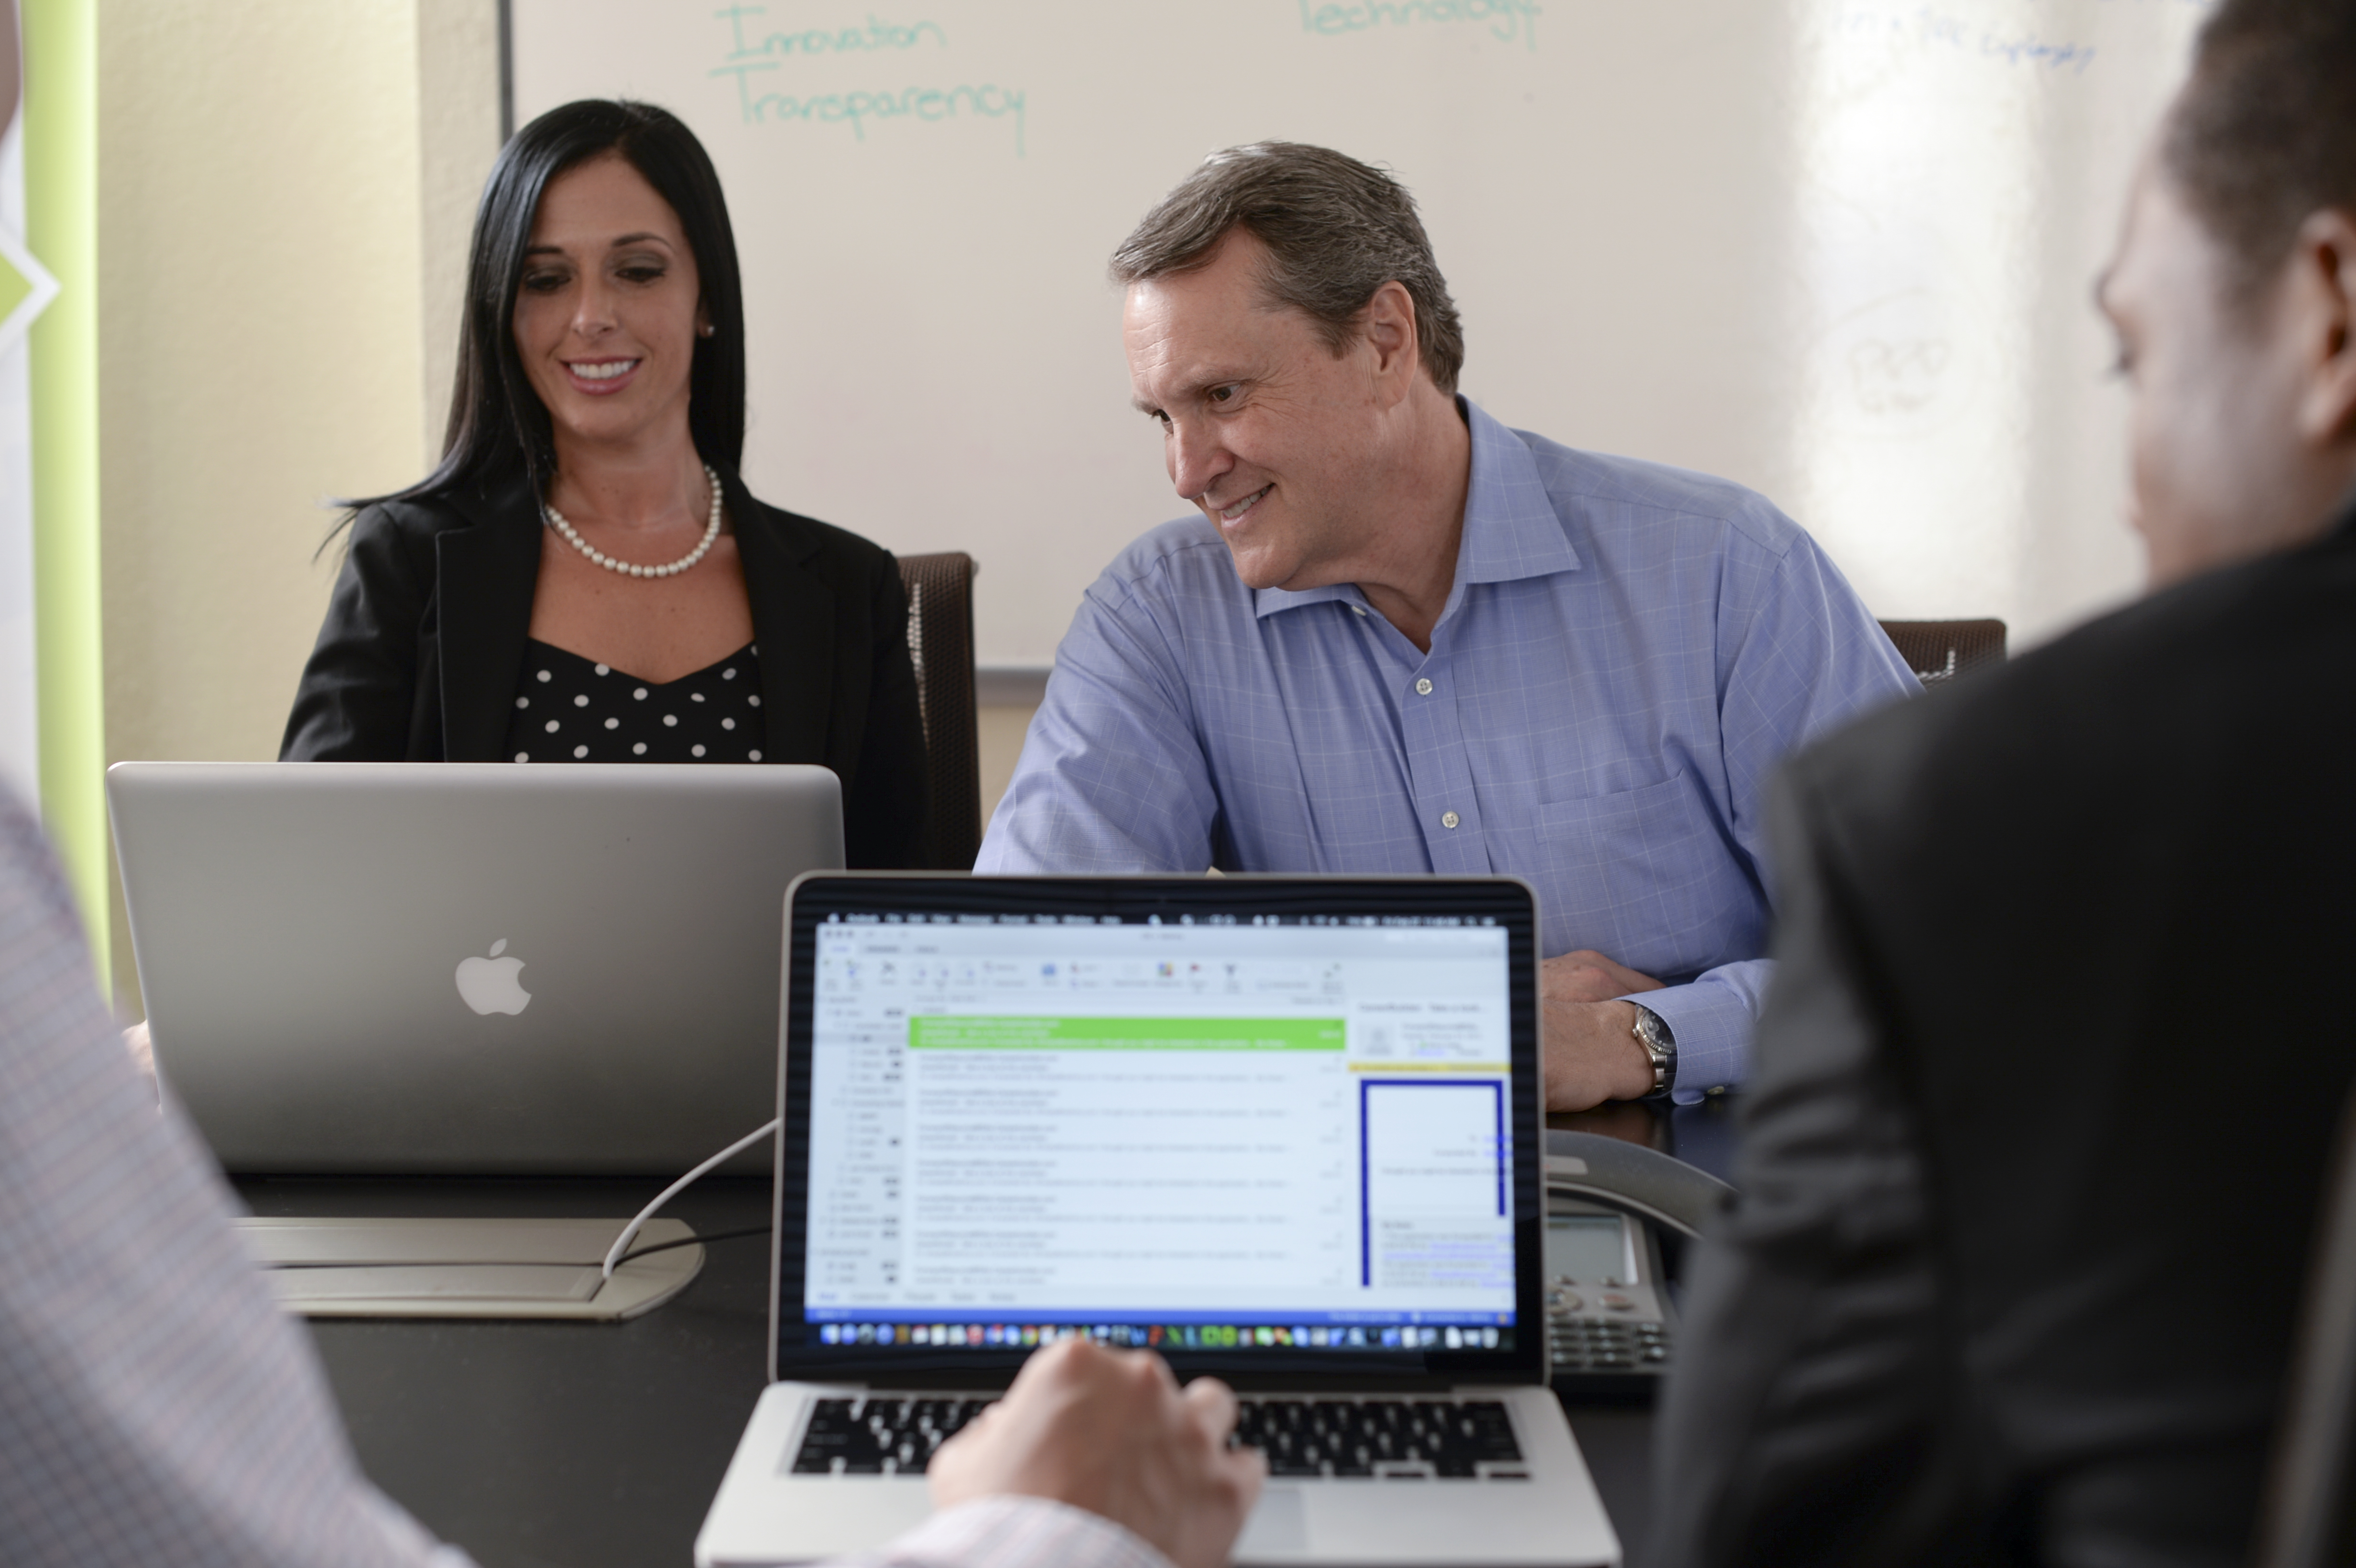 Does Your Salesforce Partner Have Your Best Interests in Mind?